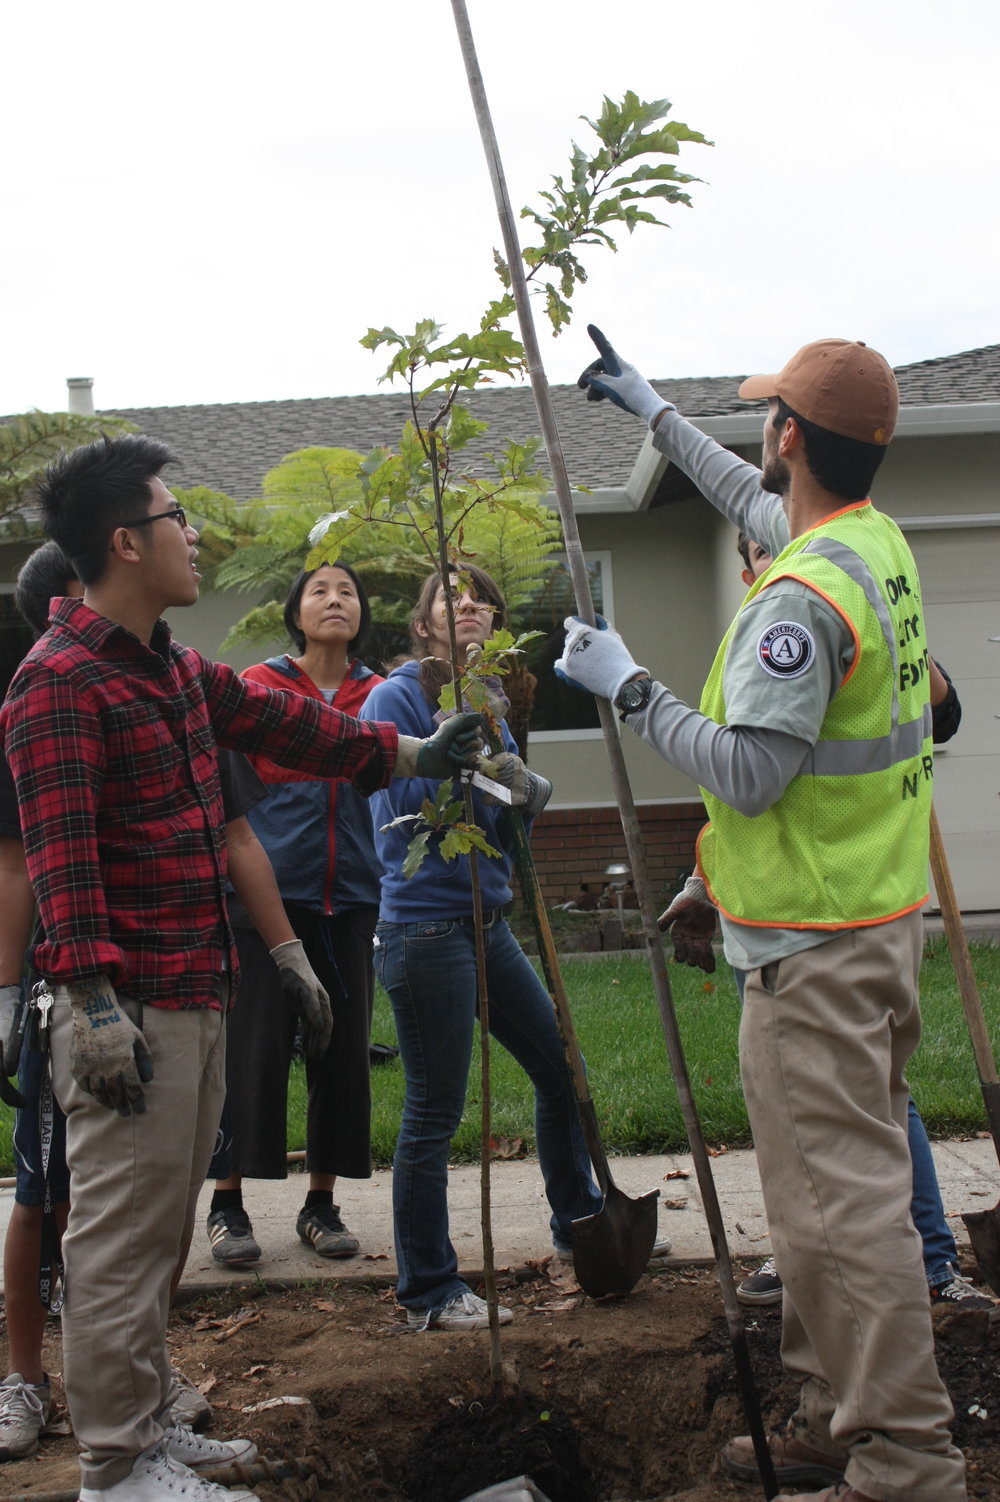 An Our City Forest AmeriCorps Service Member teaching the community how to properly plant a tree.